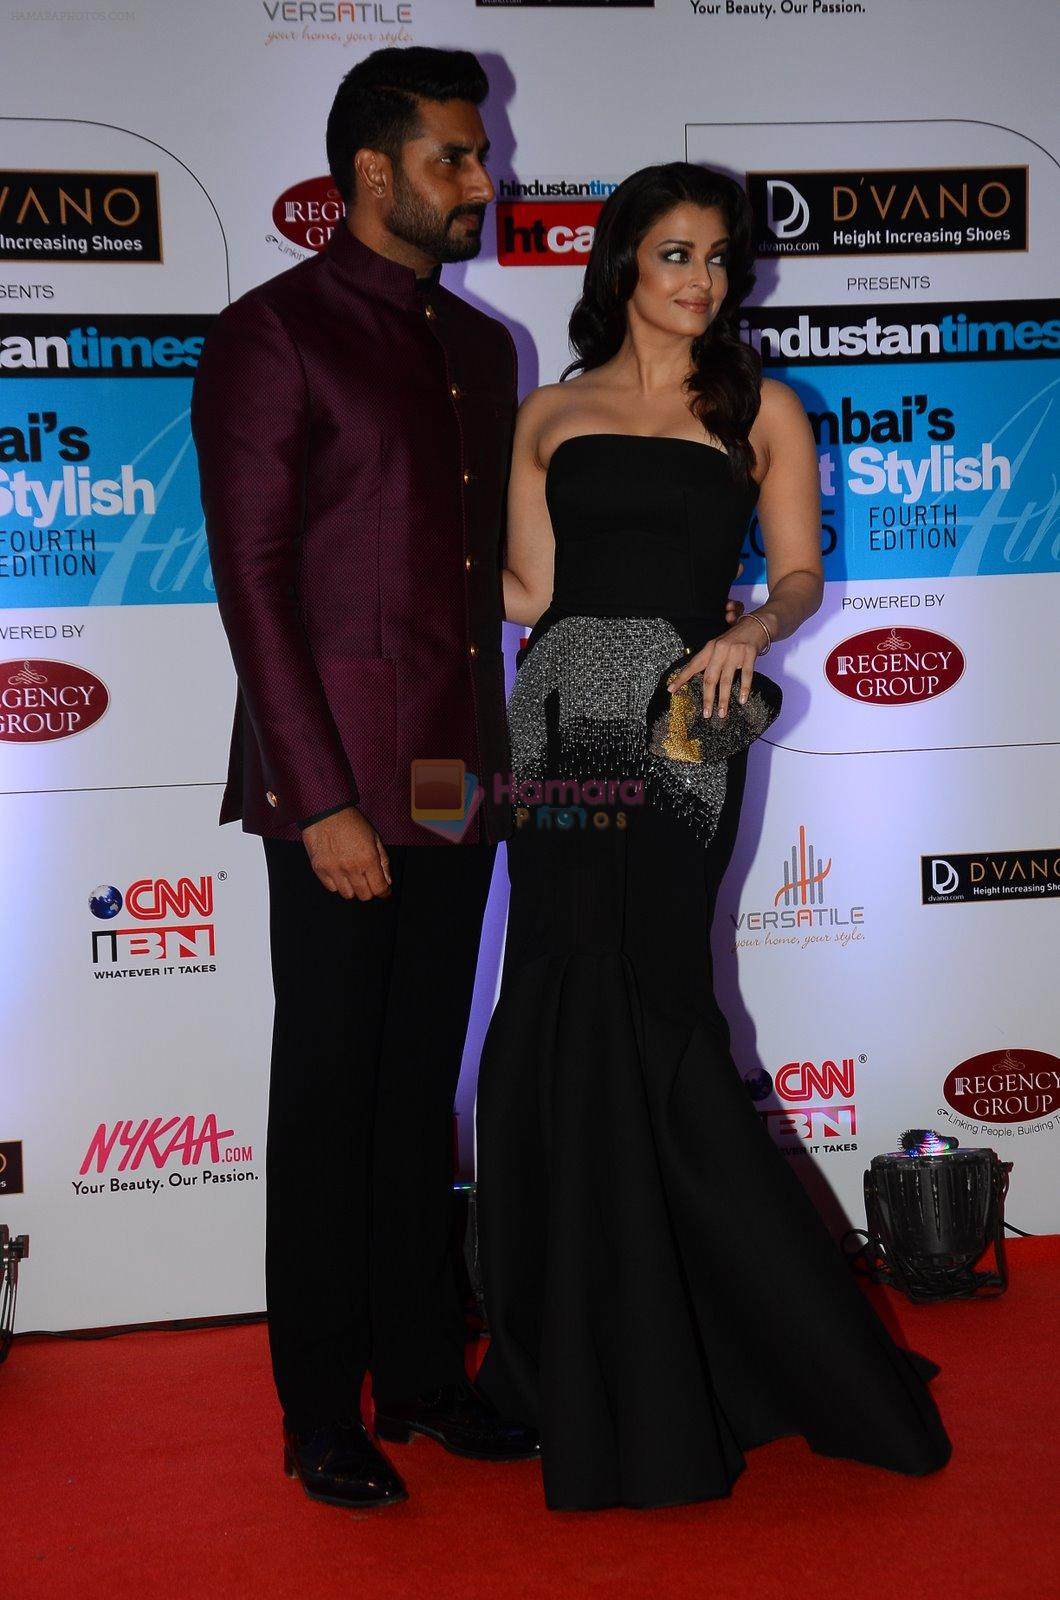 Abhishek Bachchan, Aishwarya Rai Bachchan at HT Mumbai's Most Stylish Awards 2015 in Mumbai on 26th March 2015